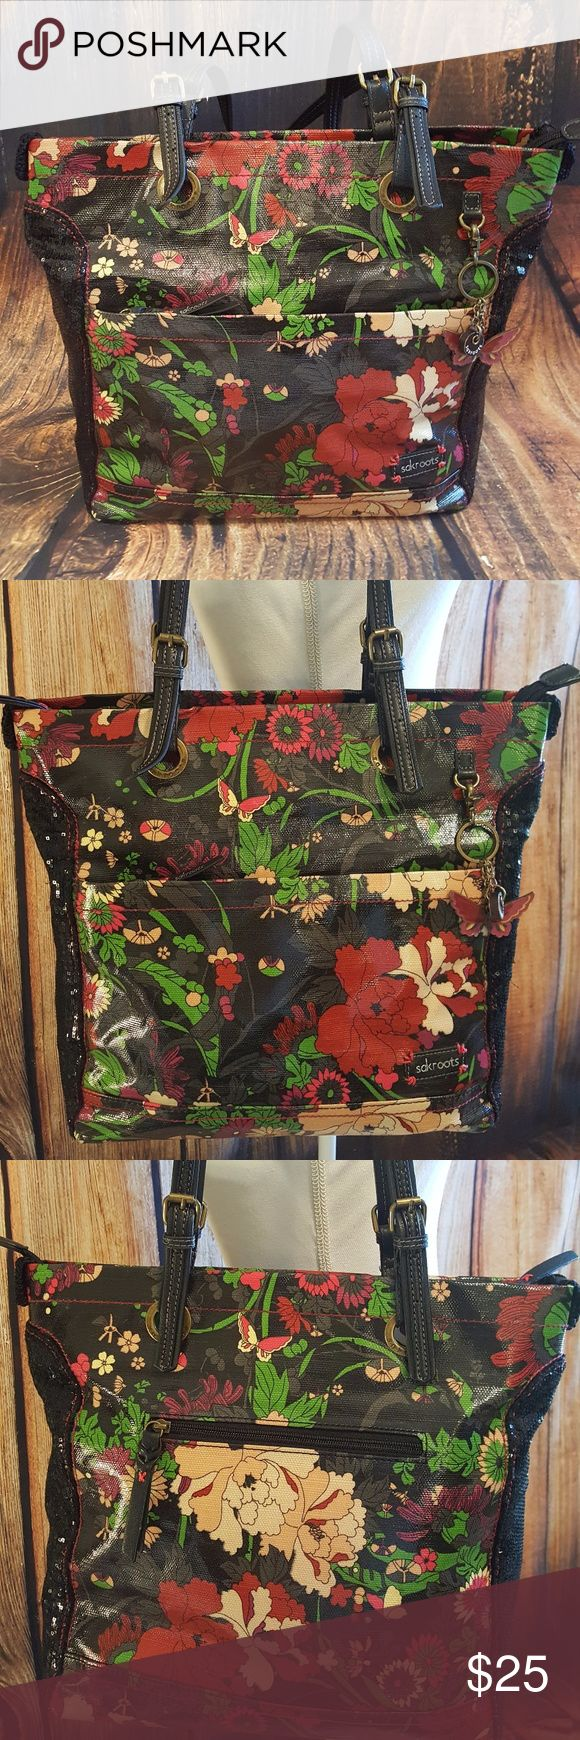 Sakroots Black Print Tote 🦋🤗🦋 Great tote to throw everything in & go by Sakroots!  Fun floral & butterfly print with sequin side panels! Lots of pockets!  Approximately 13 inches high by 15 inches wide & 5 inches deep. Fits tablets, planners, notebooks & small laptops! Print material can easily be wiped down to clean up coffee spills & just keep clean.  No rips, tears or stains, great condition!!! Sakroots Bags Shoulder Bags